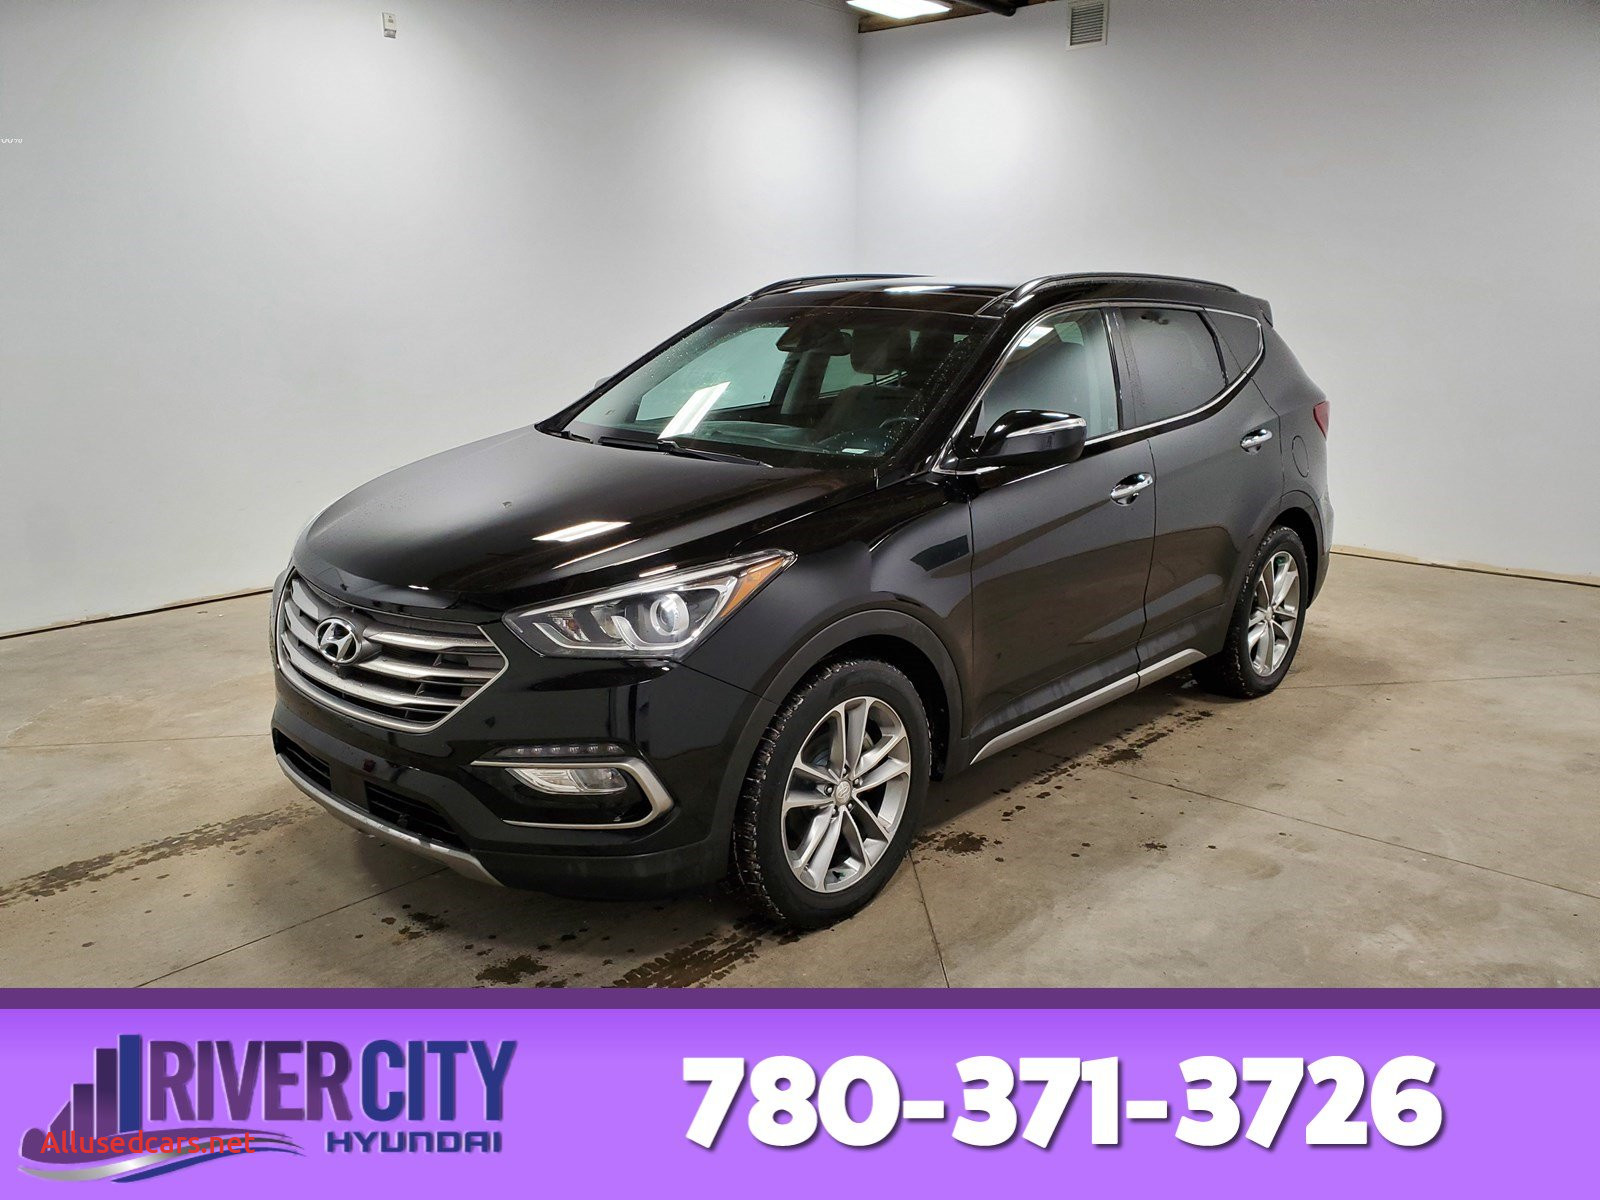 2017 Hyundai Santa Fe Luxury Certified Pre Owned 2017 Hyundai Santa Fe Sport Awd Ultimate Navigation Gps Leather Heated Seats Panoramic Roof Back Up Cam A C with